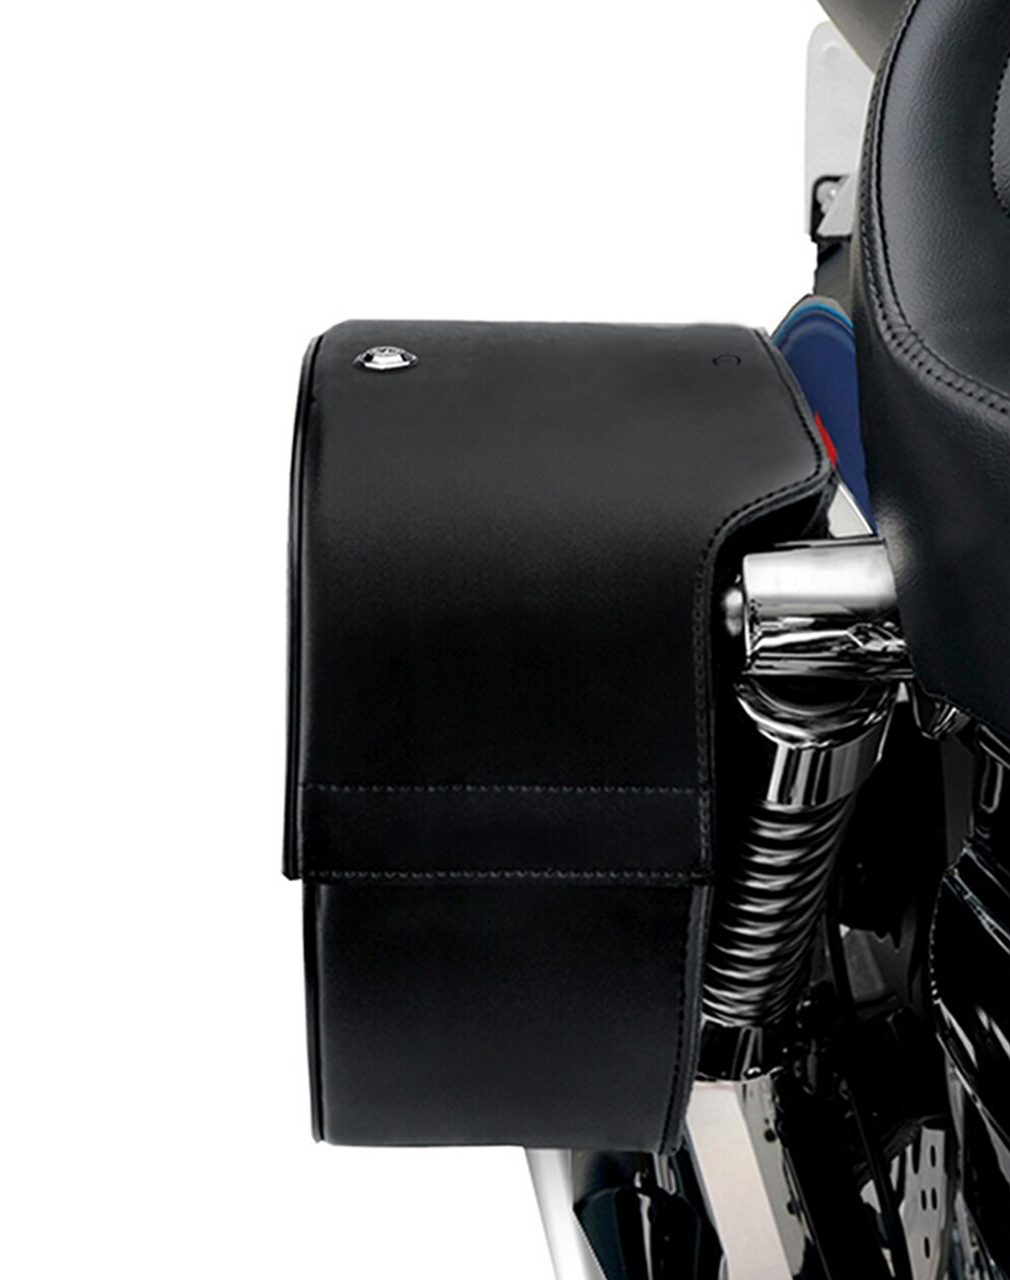 Viking Large Shock Cutout Slanted Studded Motorcycle Saddlebags For Harley Sportster 883 Iron XL883N Shock cutout view